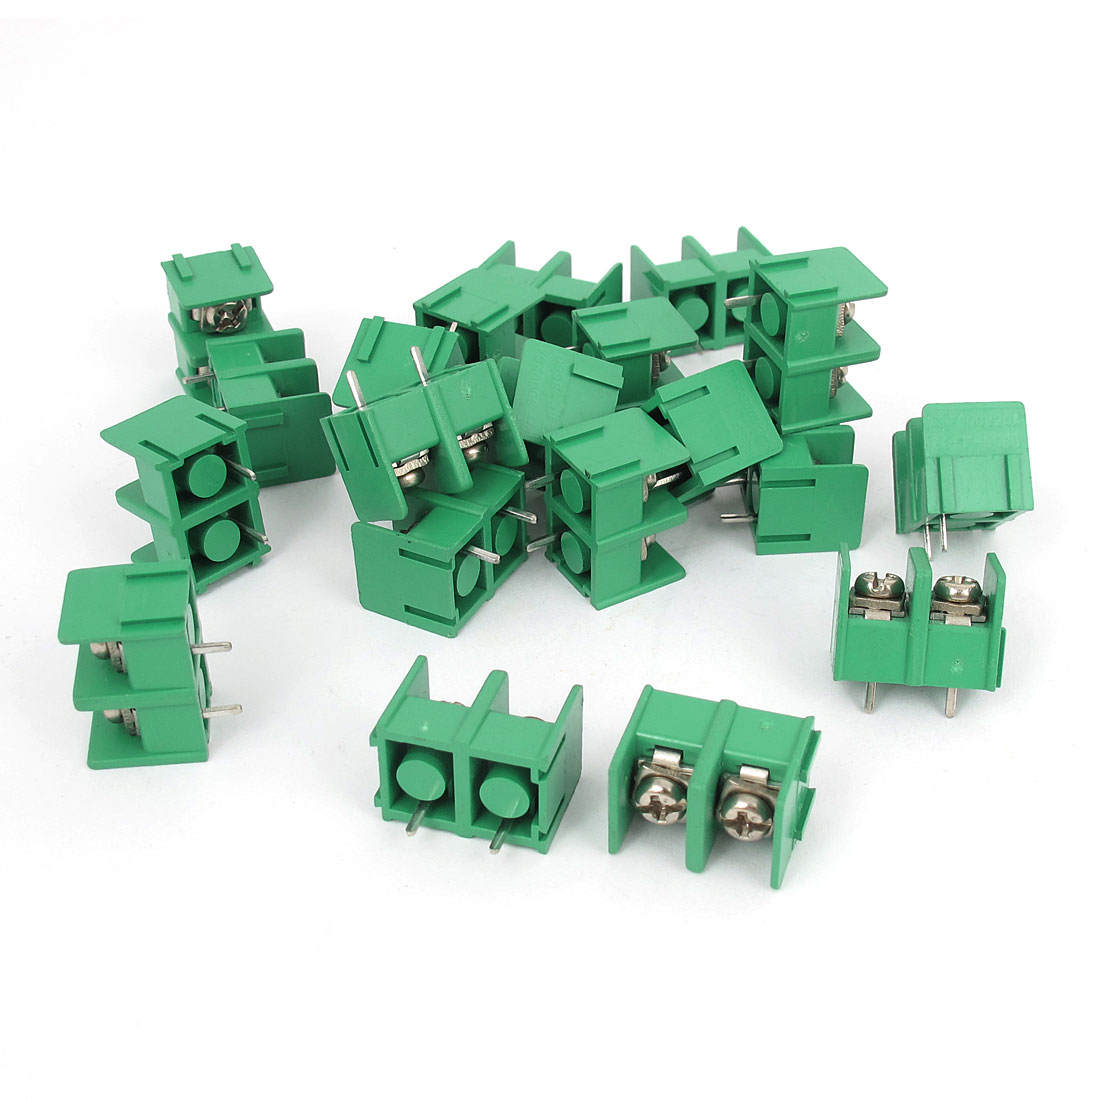 20Pcs 7mm Pitch 2 Position 300V 20A Terminal Block Green